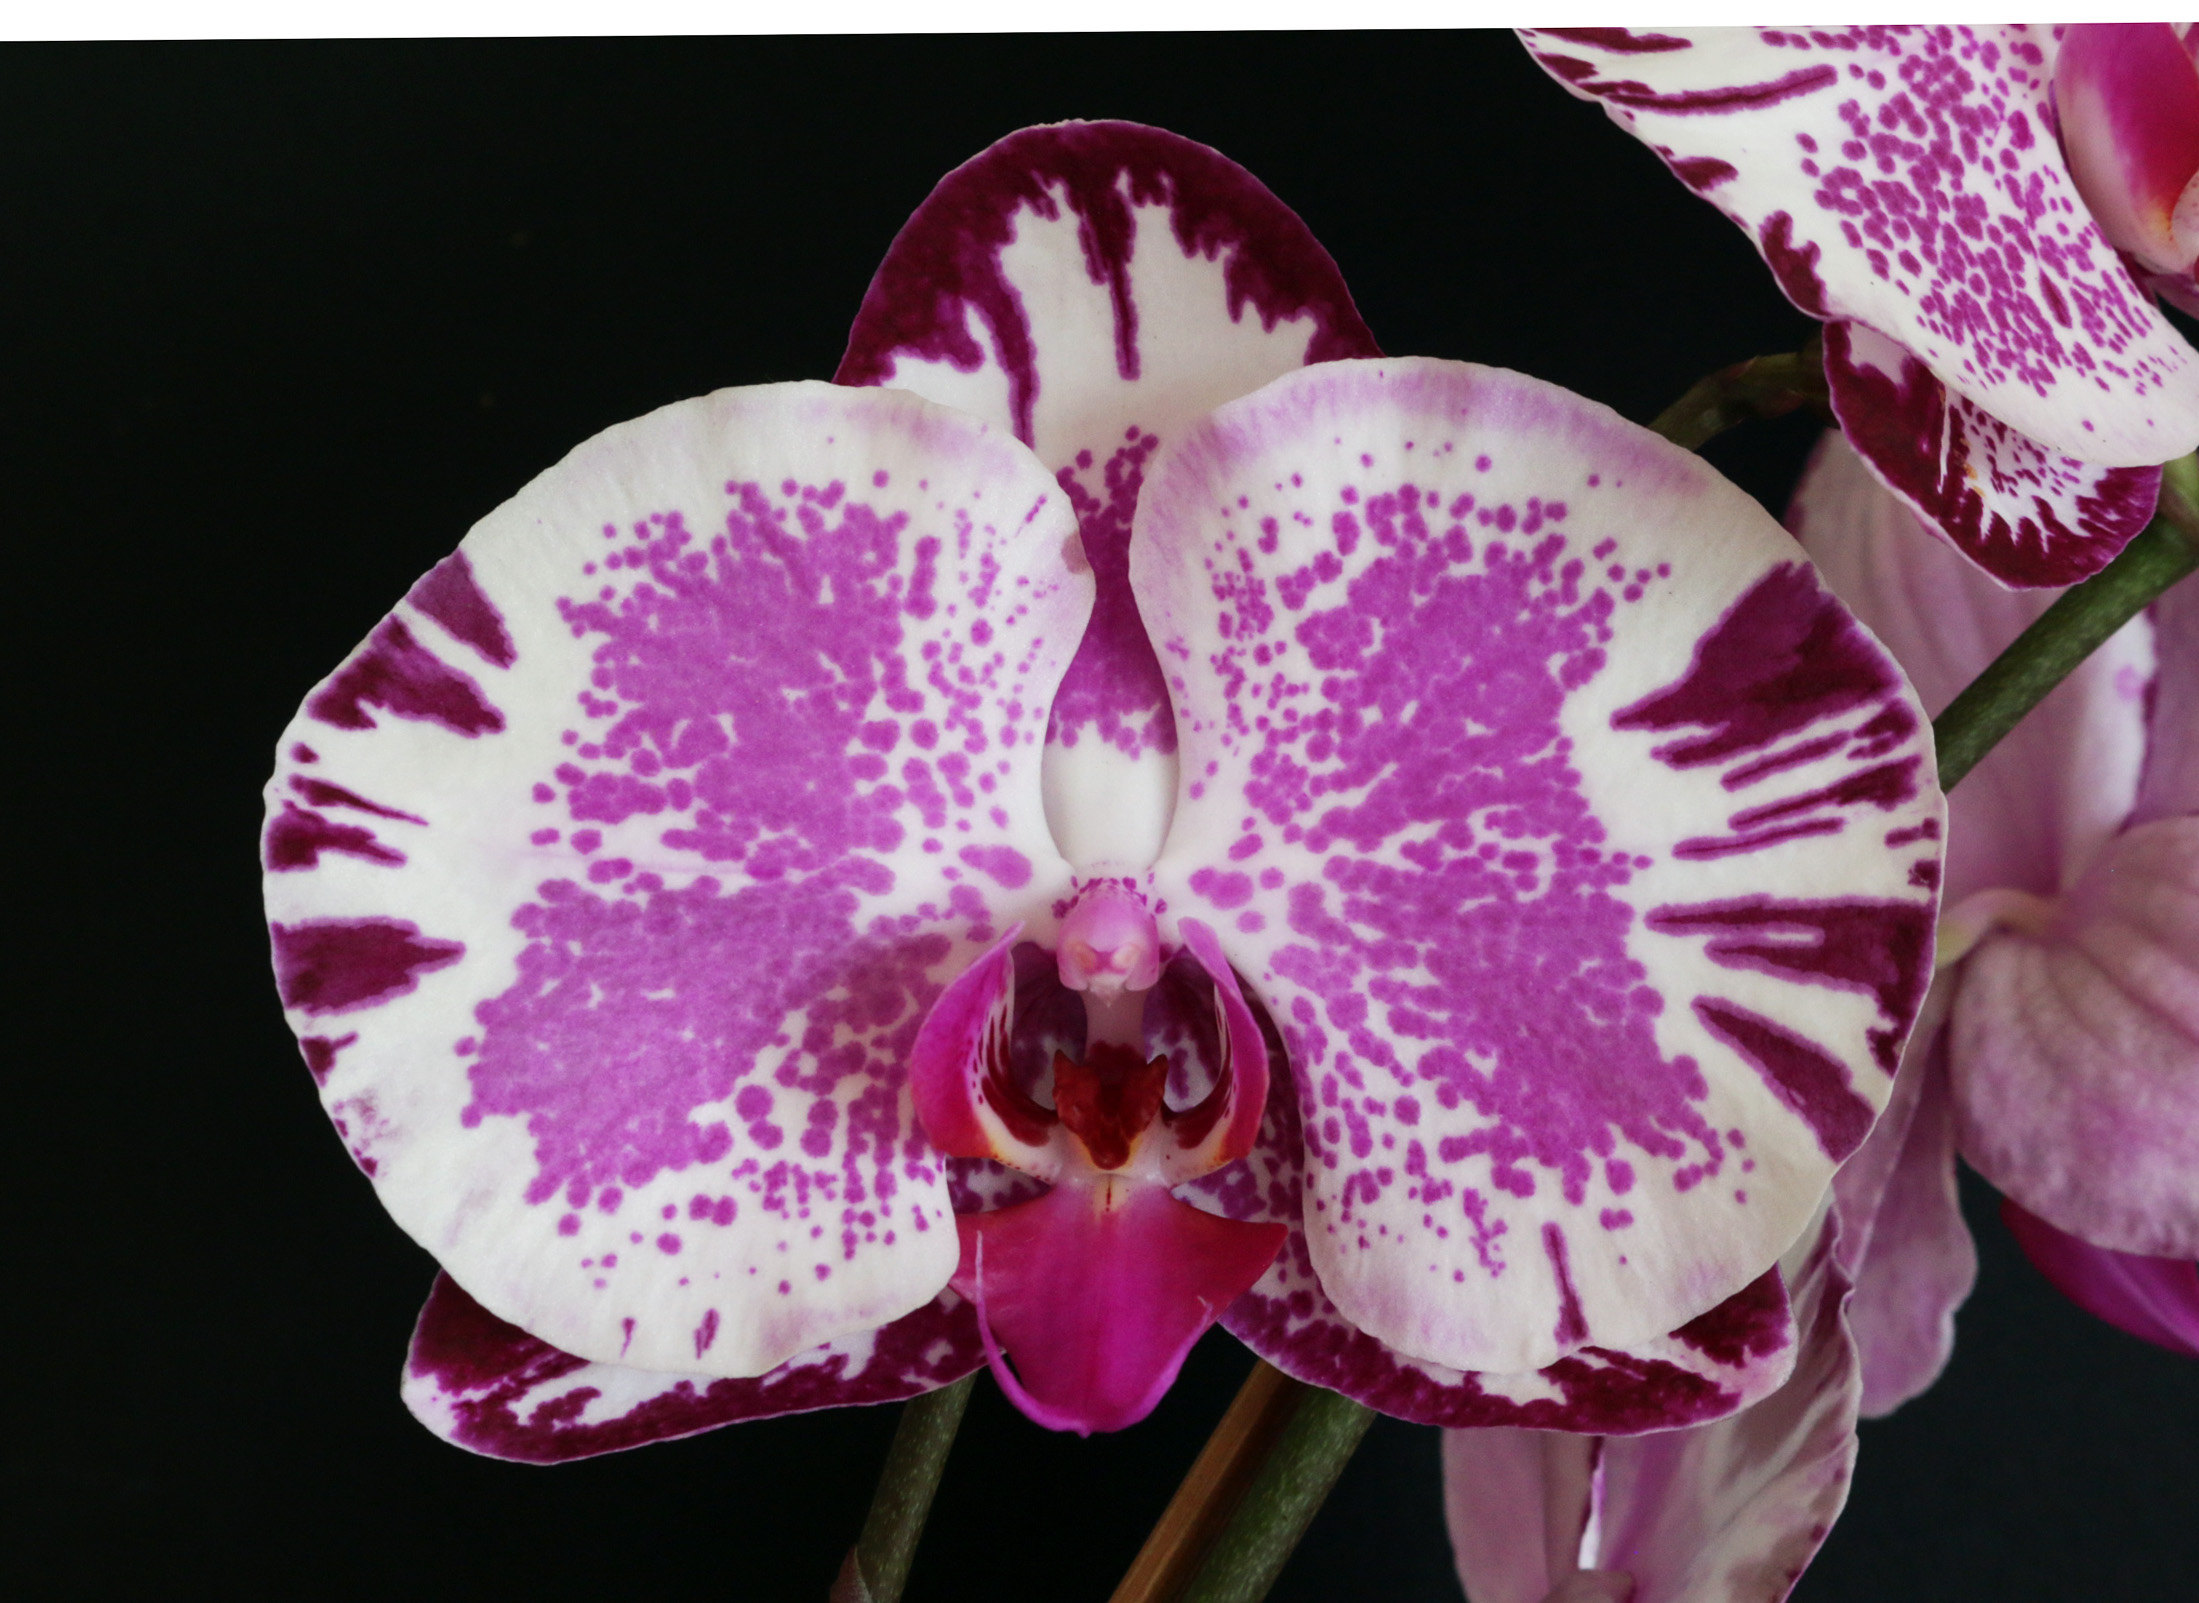 2016-011 Phal. Chian Xen Piano 'CX367' HCC 79.12 Owner R & S Tucker Photo C Hubbert OCNZ